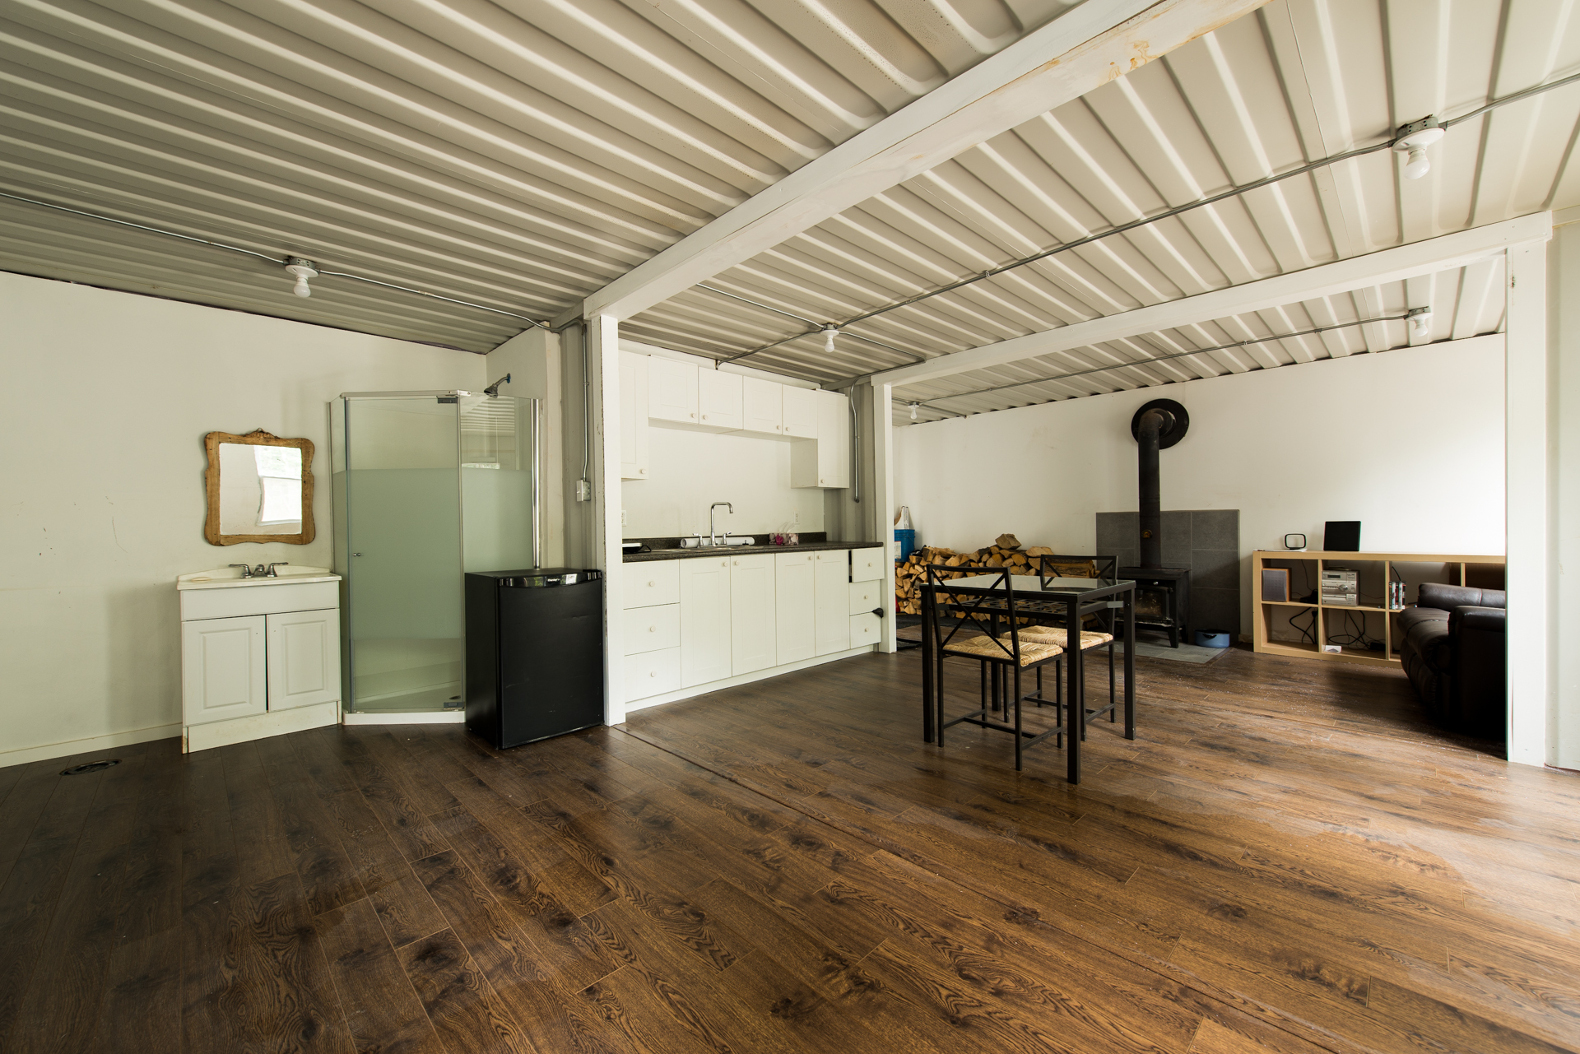 A Canadian Man Built This Off Grid Shipping Container Home For Just $20,000  Joseph Dupuis Shipping Container Home Wood Burning Stove U2013 Inhabitat    Green ...